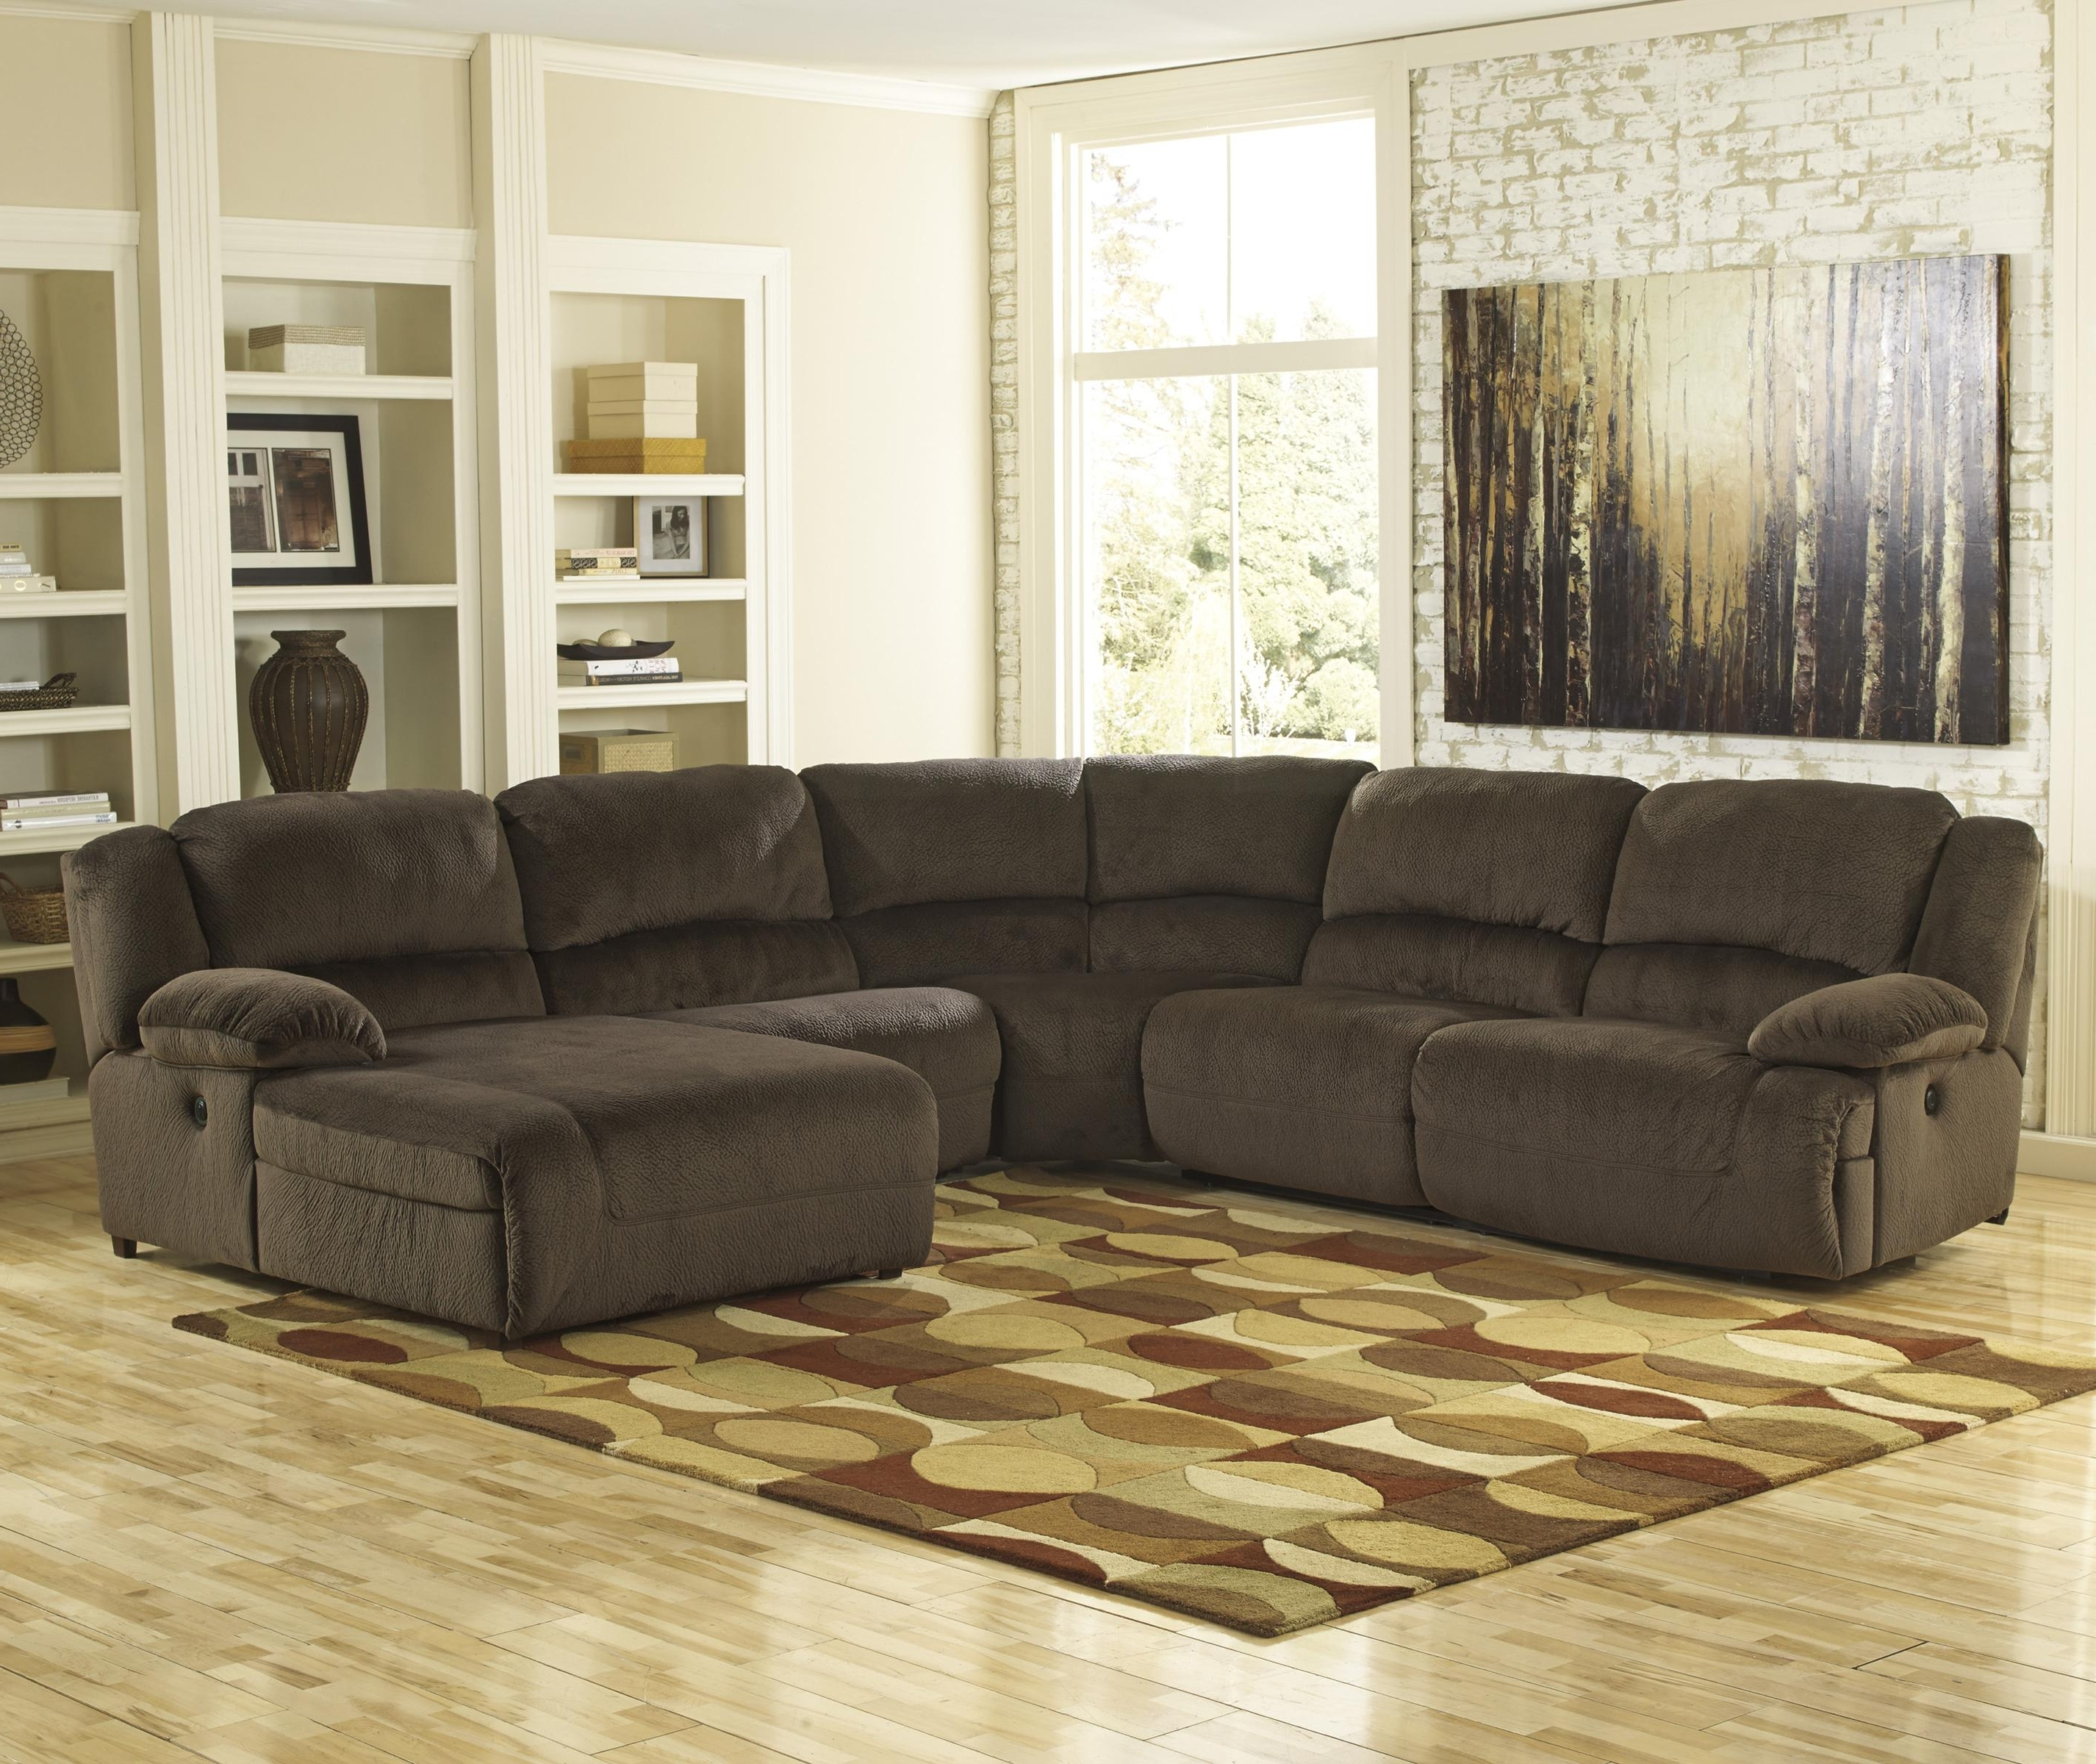 Furniture : Sectional Sofa Houzz Recliner 60S Sectional Couch 600 Throughout 2018 Houzz Sectional Sofas (View 9 of 20)